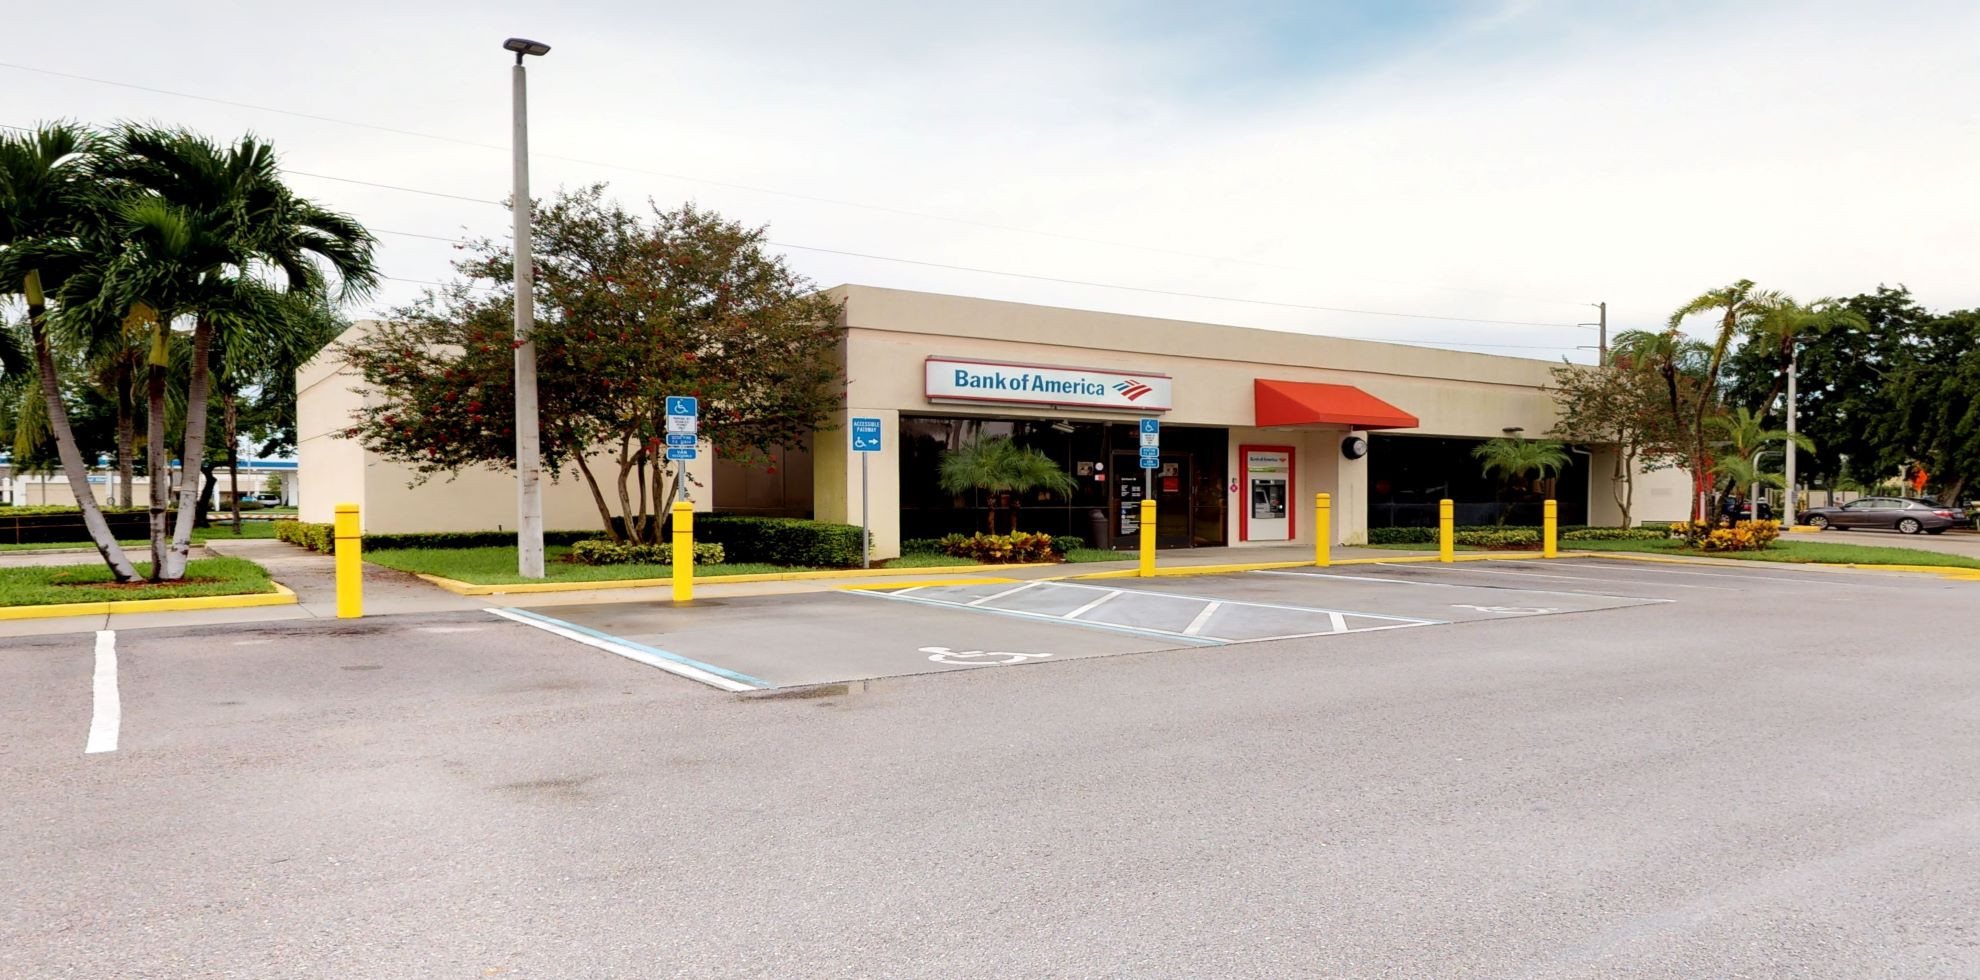 Bank of America financial center with drive-thru ATM and teller   7024 W Palmetto Park Rd, Boca Raton, FL 33433